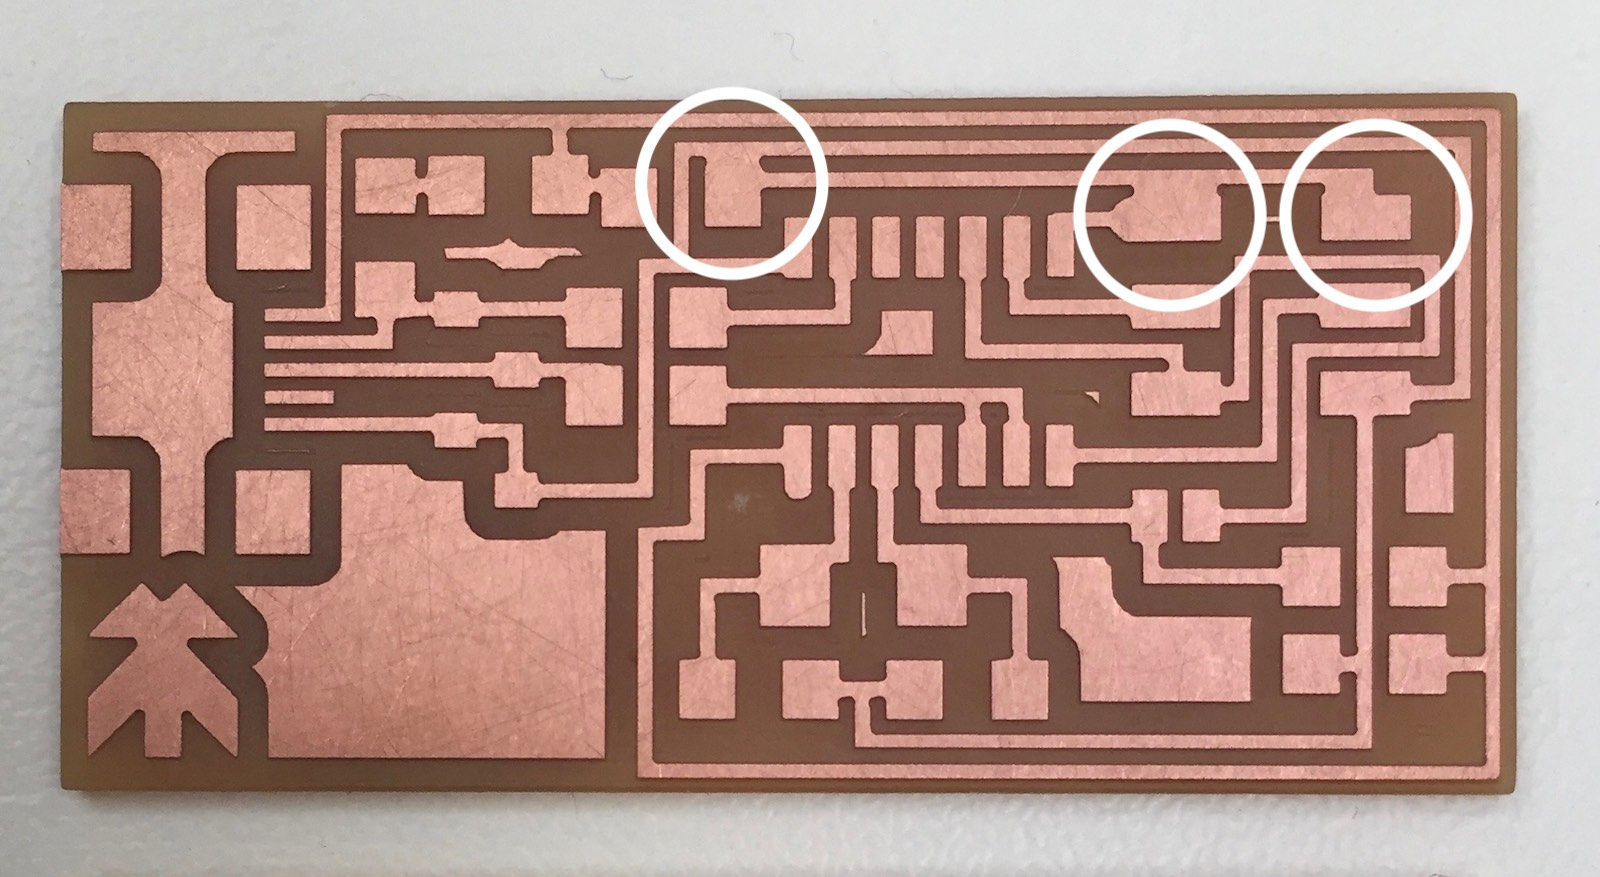 Week 5 Making A Pcb Andrew Sleighfab Academy 2018 Of Parts On The Circuit Board With Copper Traces Beneath Trace Errors